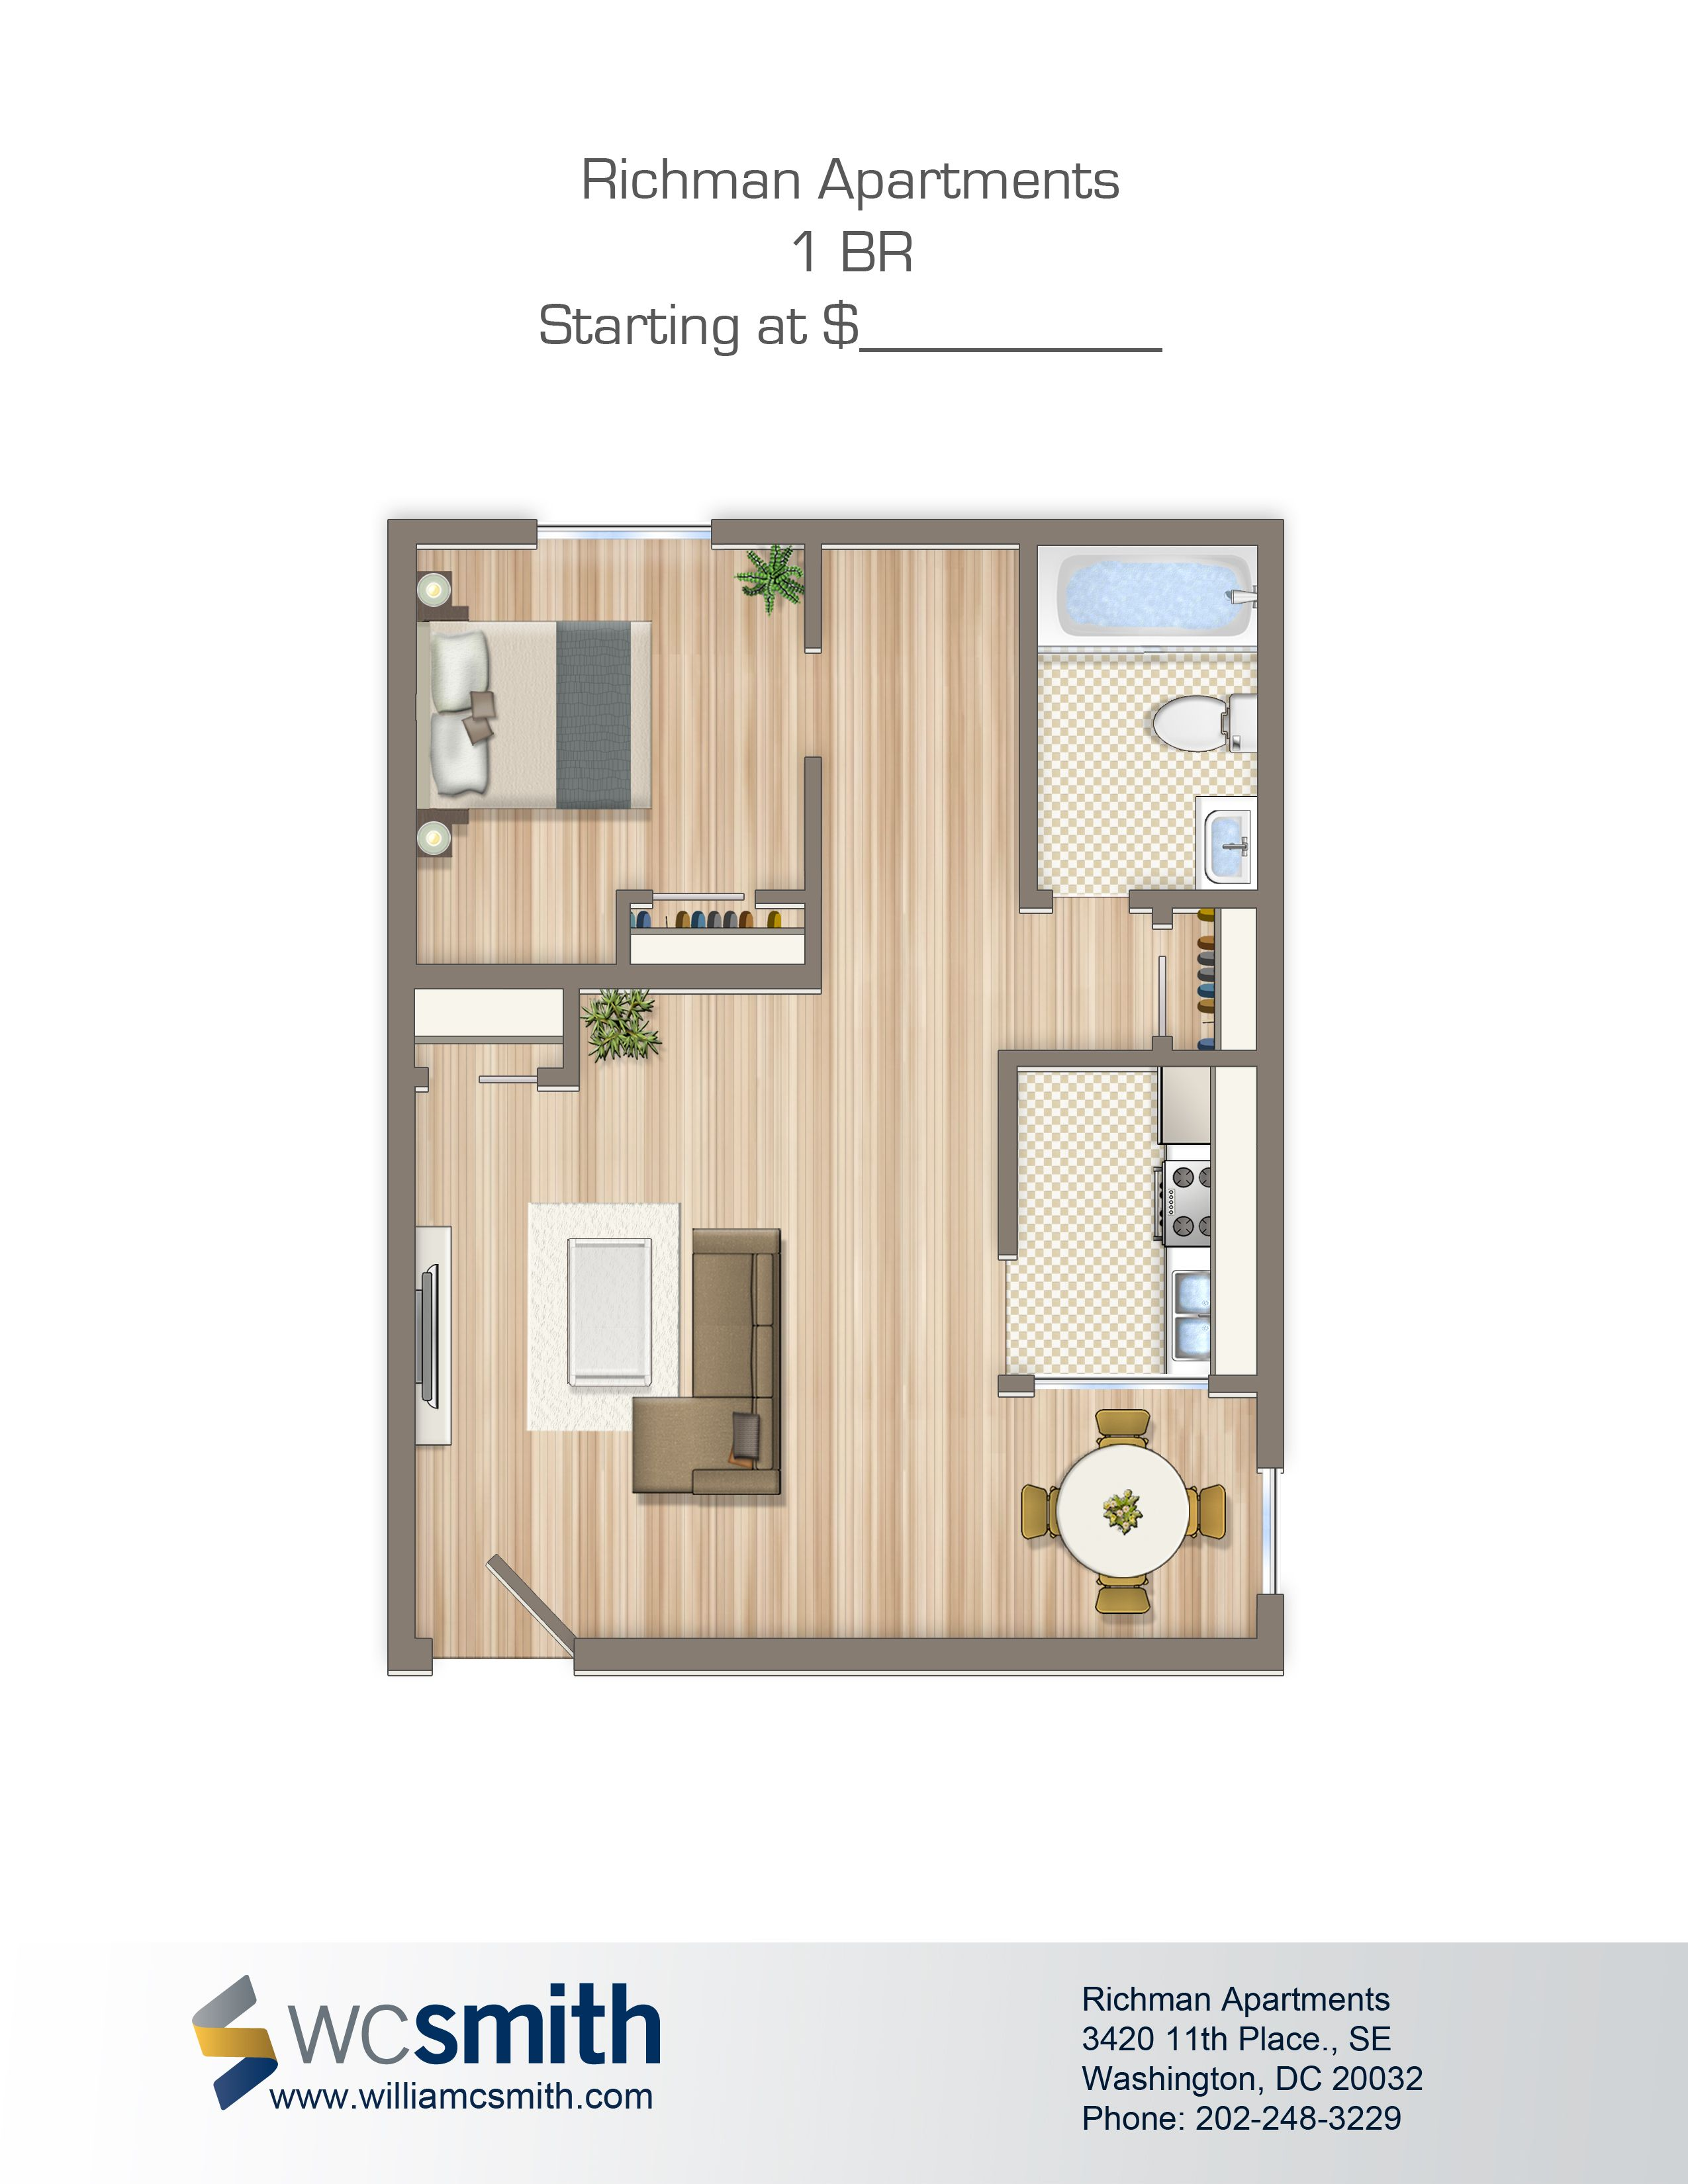 Richman Apartments In Washington Dc Wc Smith Small House Plans 1 Bedroom House 1 Bedroom Apartment